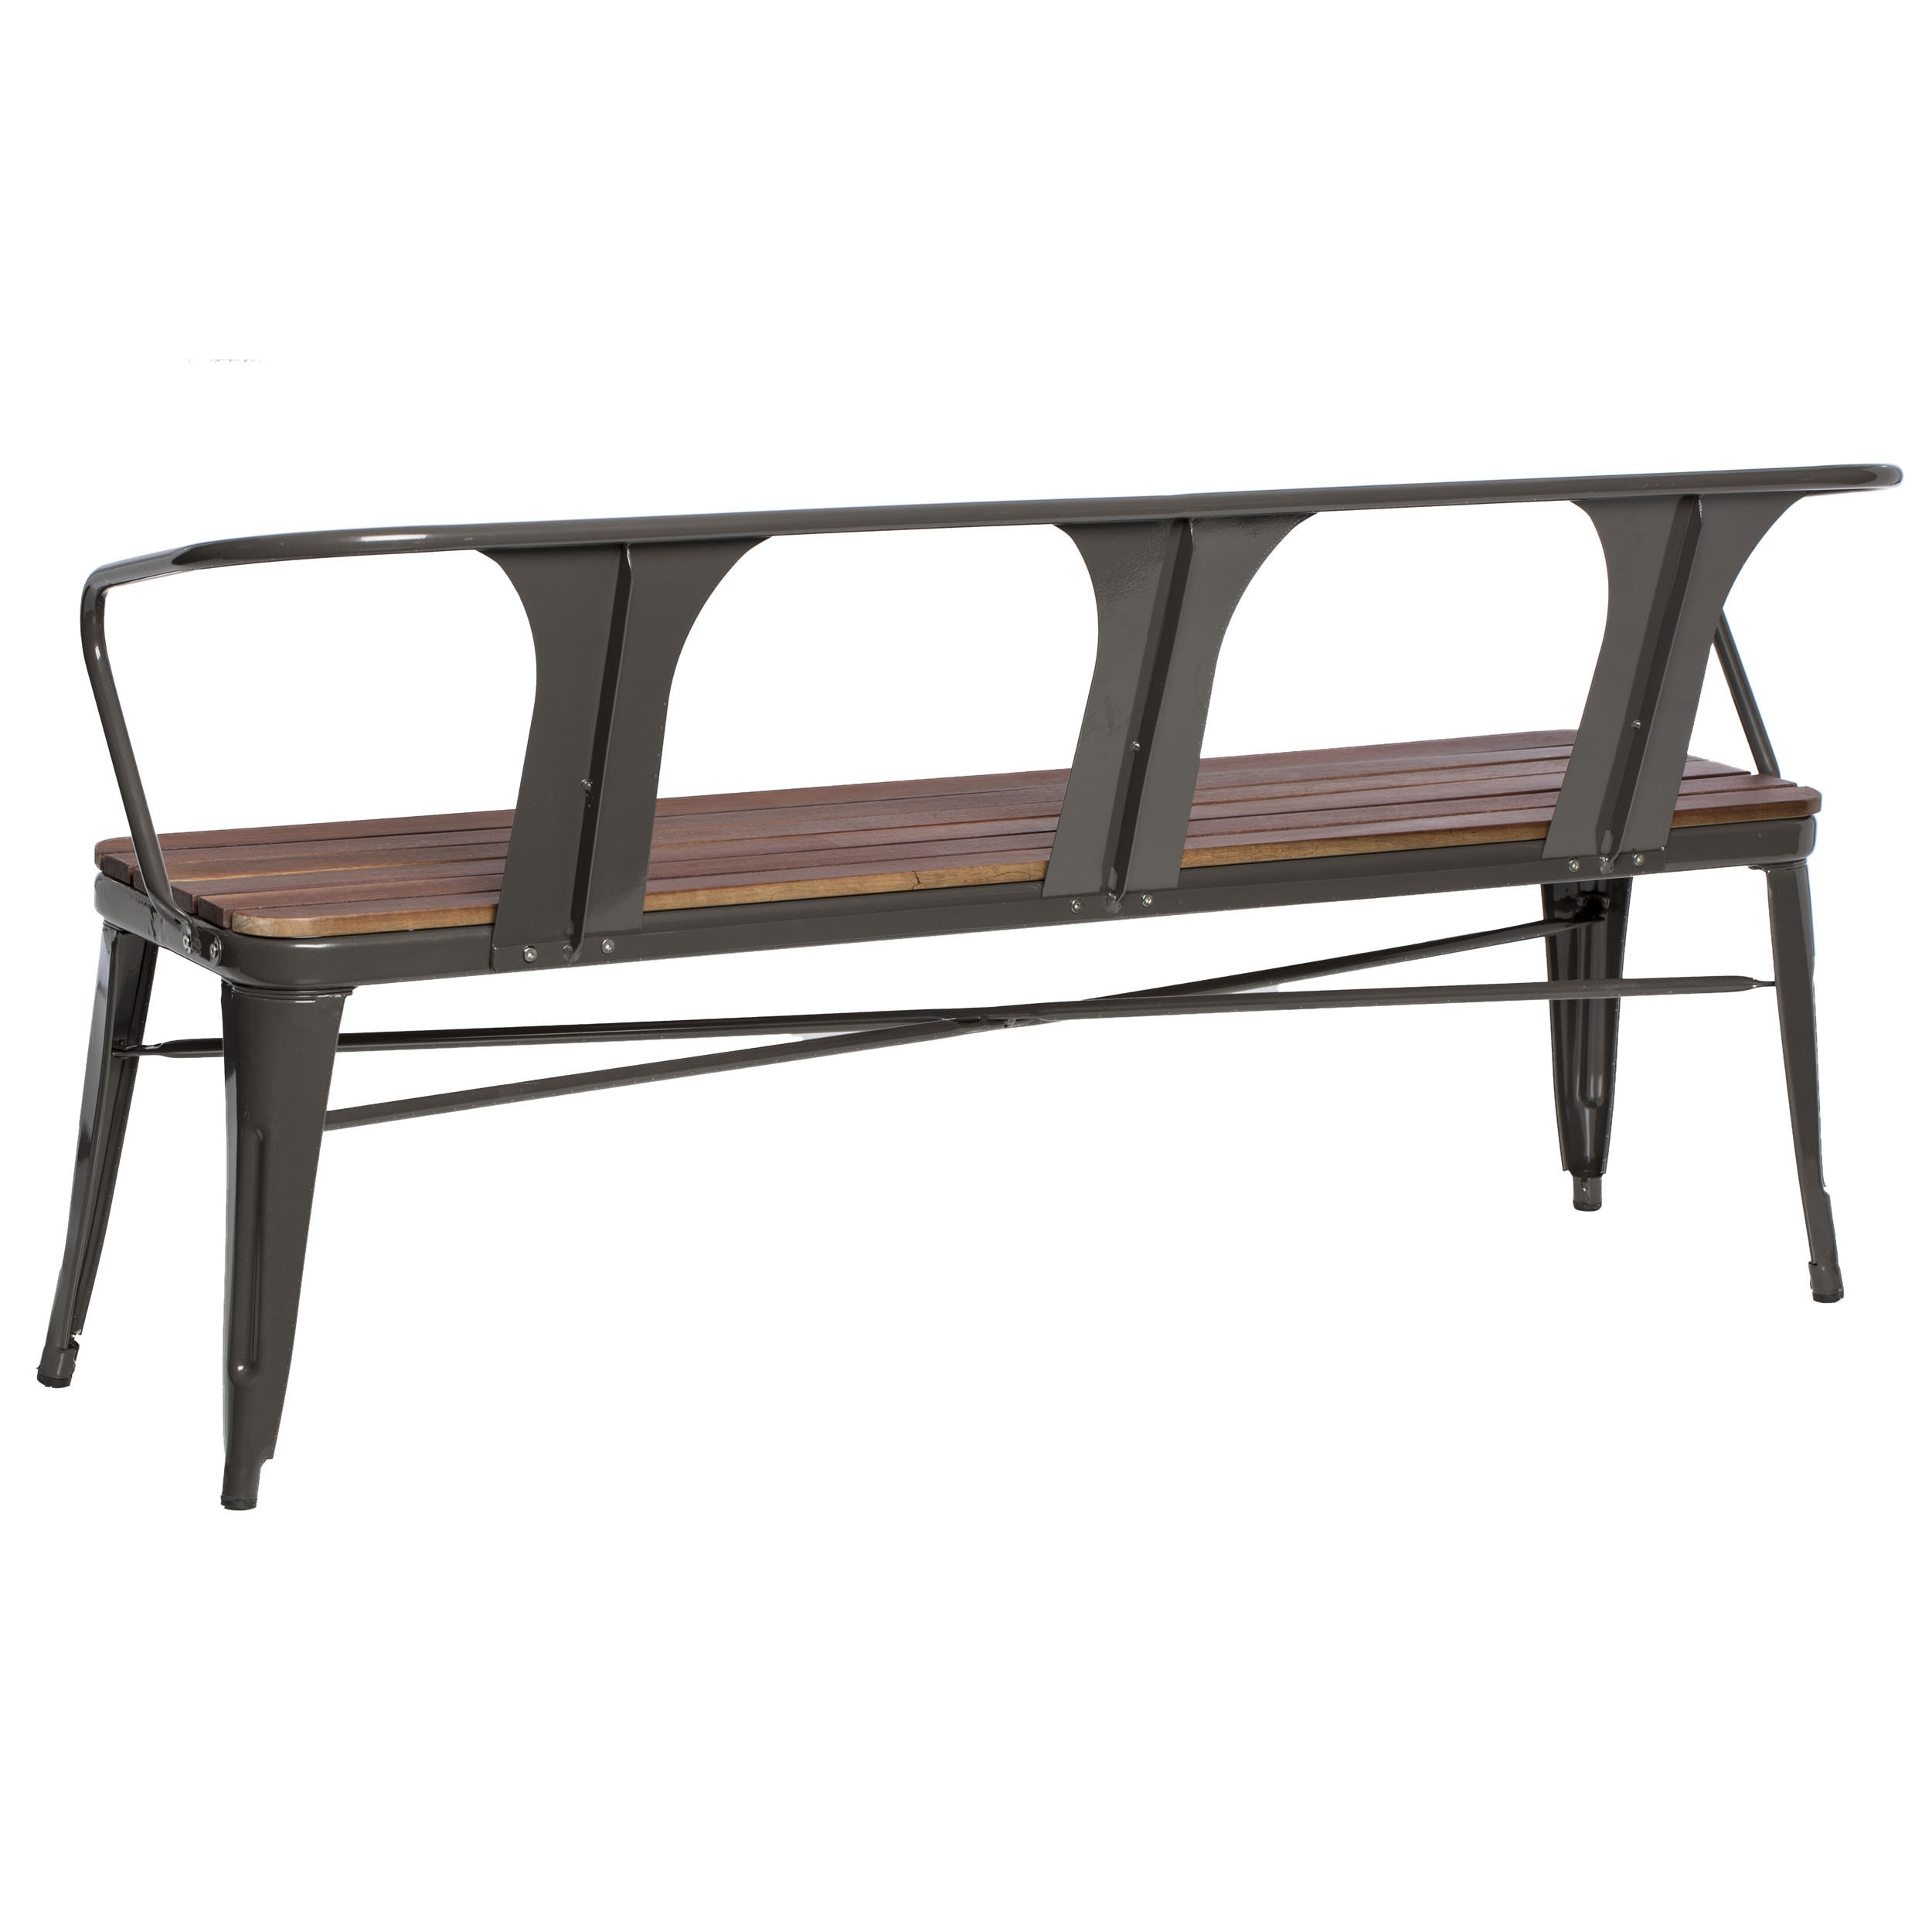 Carbon Loft Jardin Outdoor Steel Frame Bench - Free Shipping Today ...